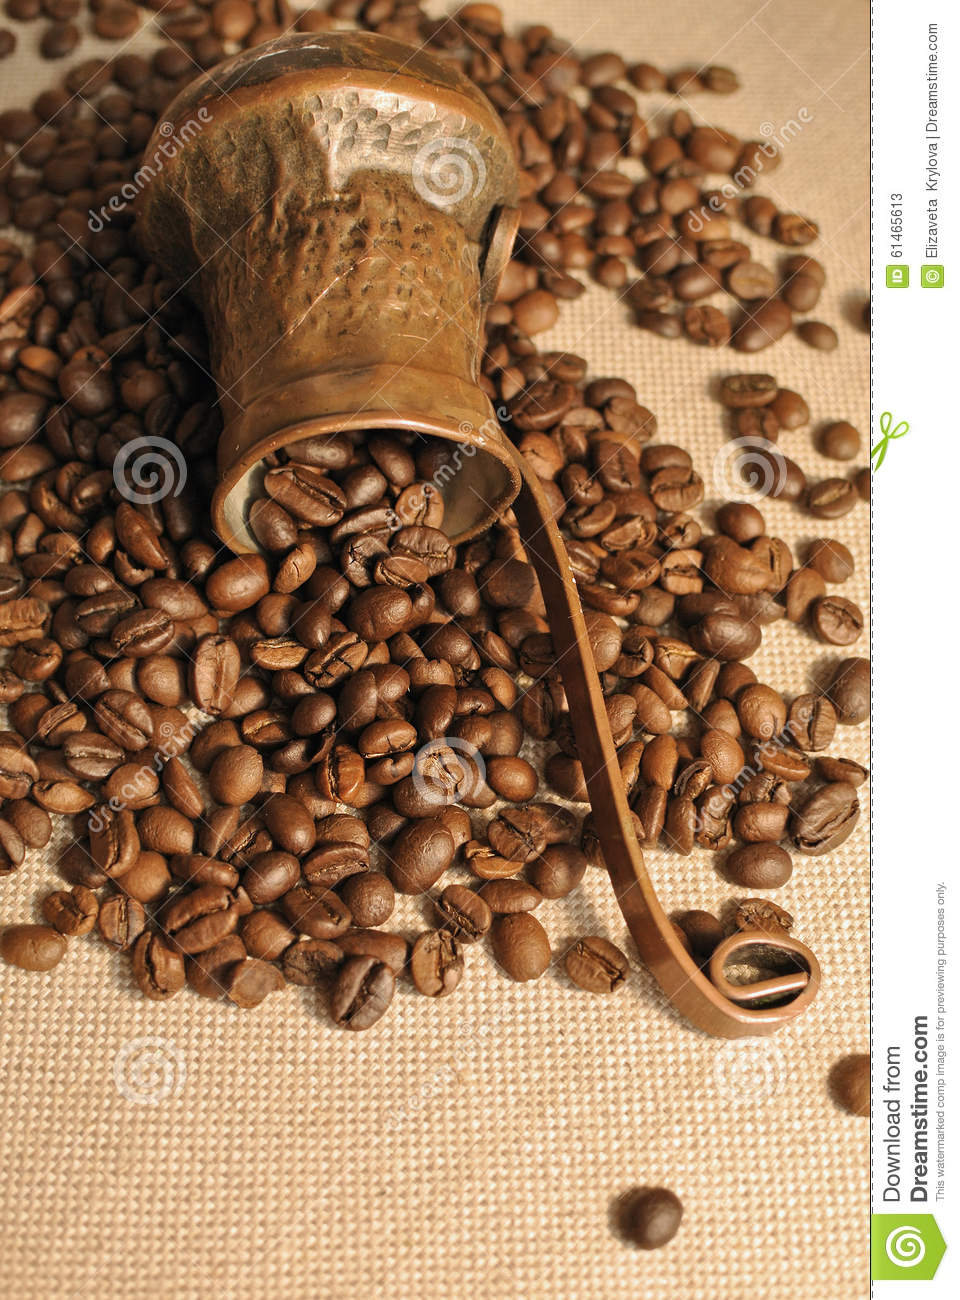 Coffee beans and vintage copper turkish coffee pot (cezve or ibrik) on the cloth sack